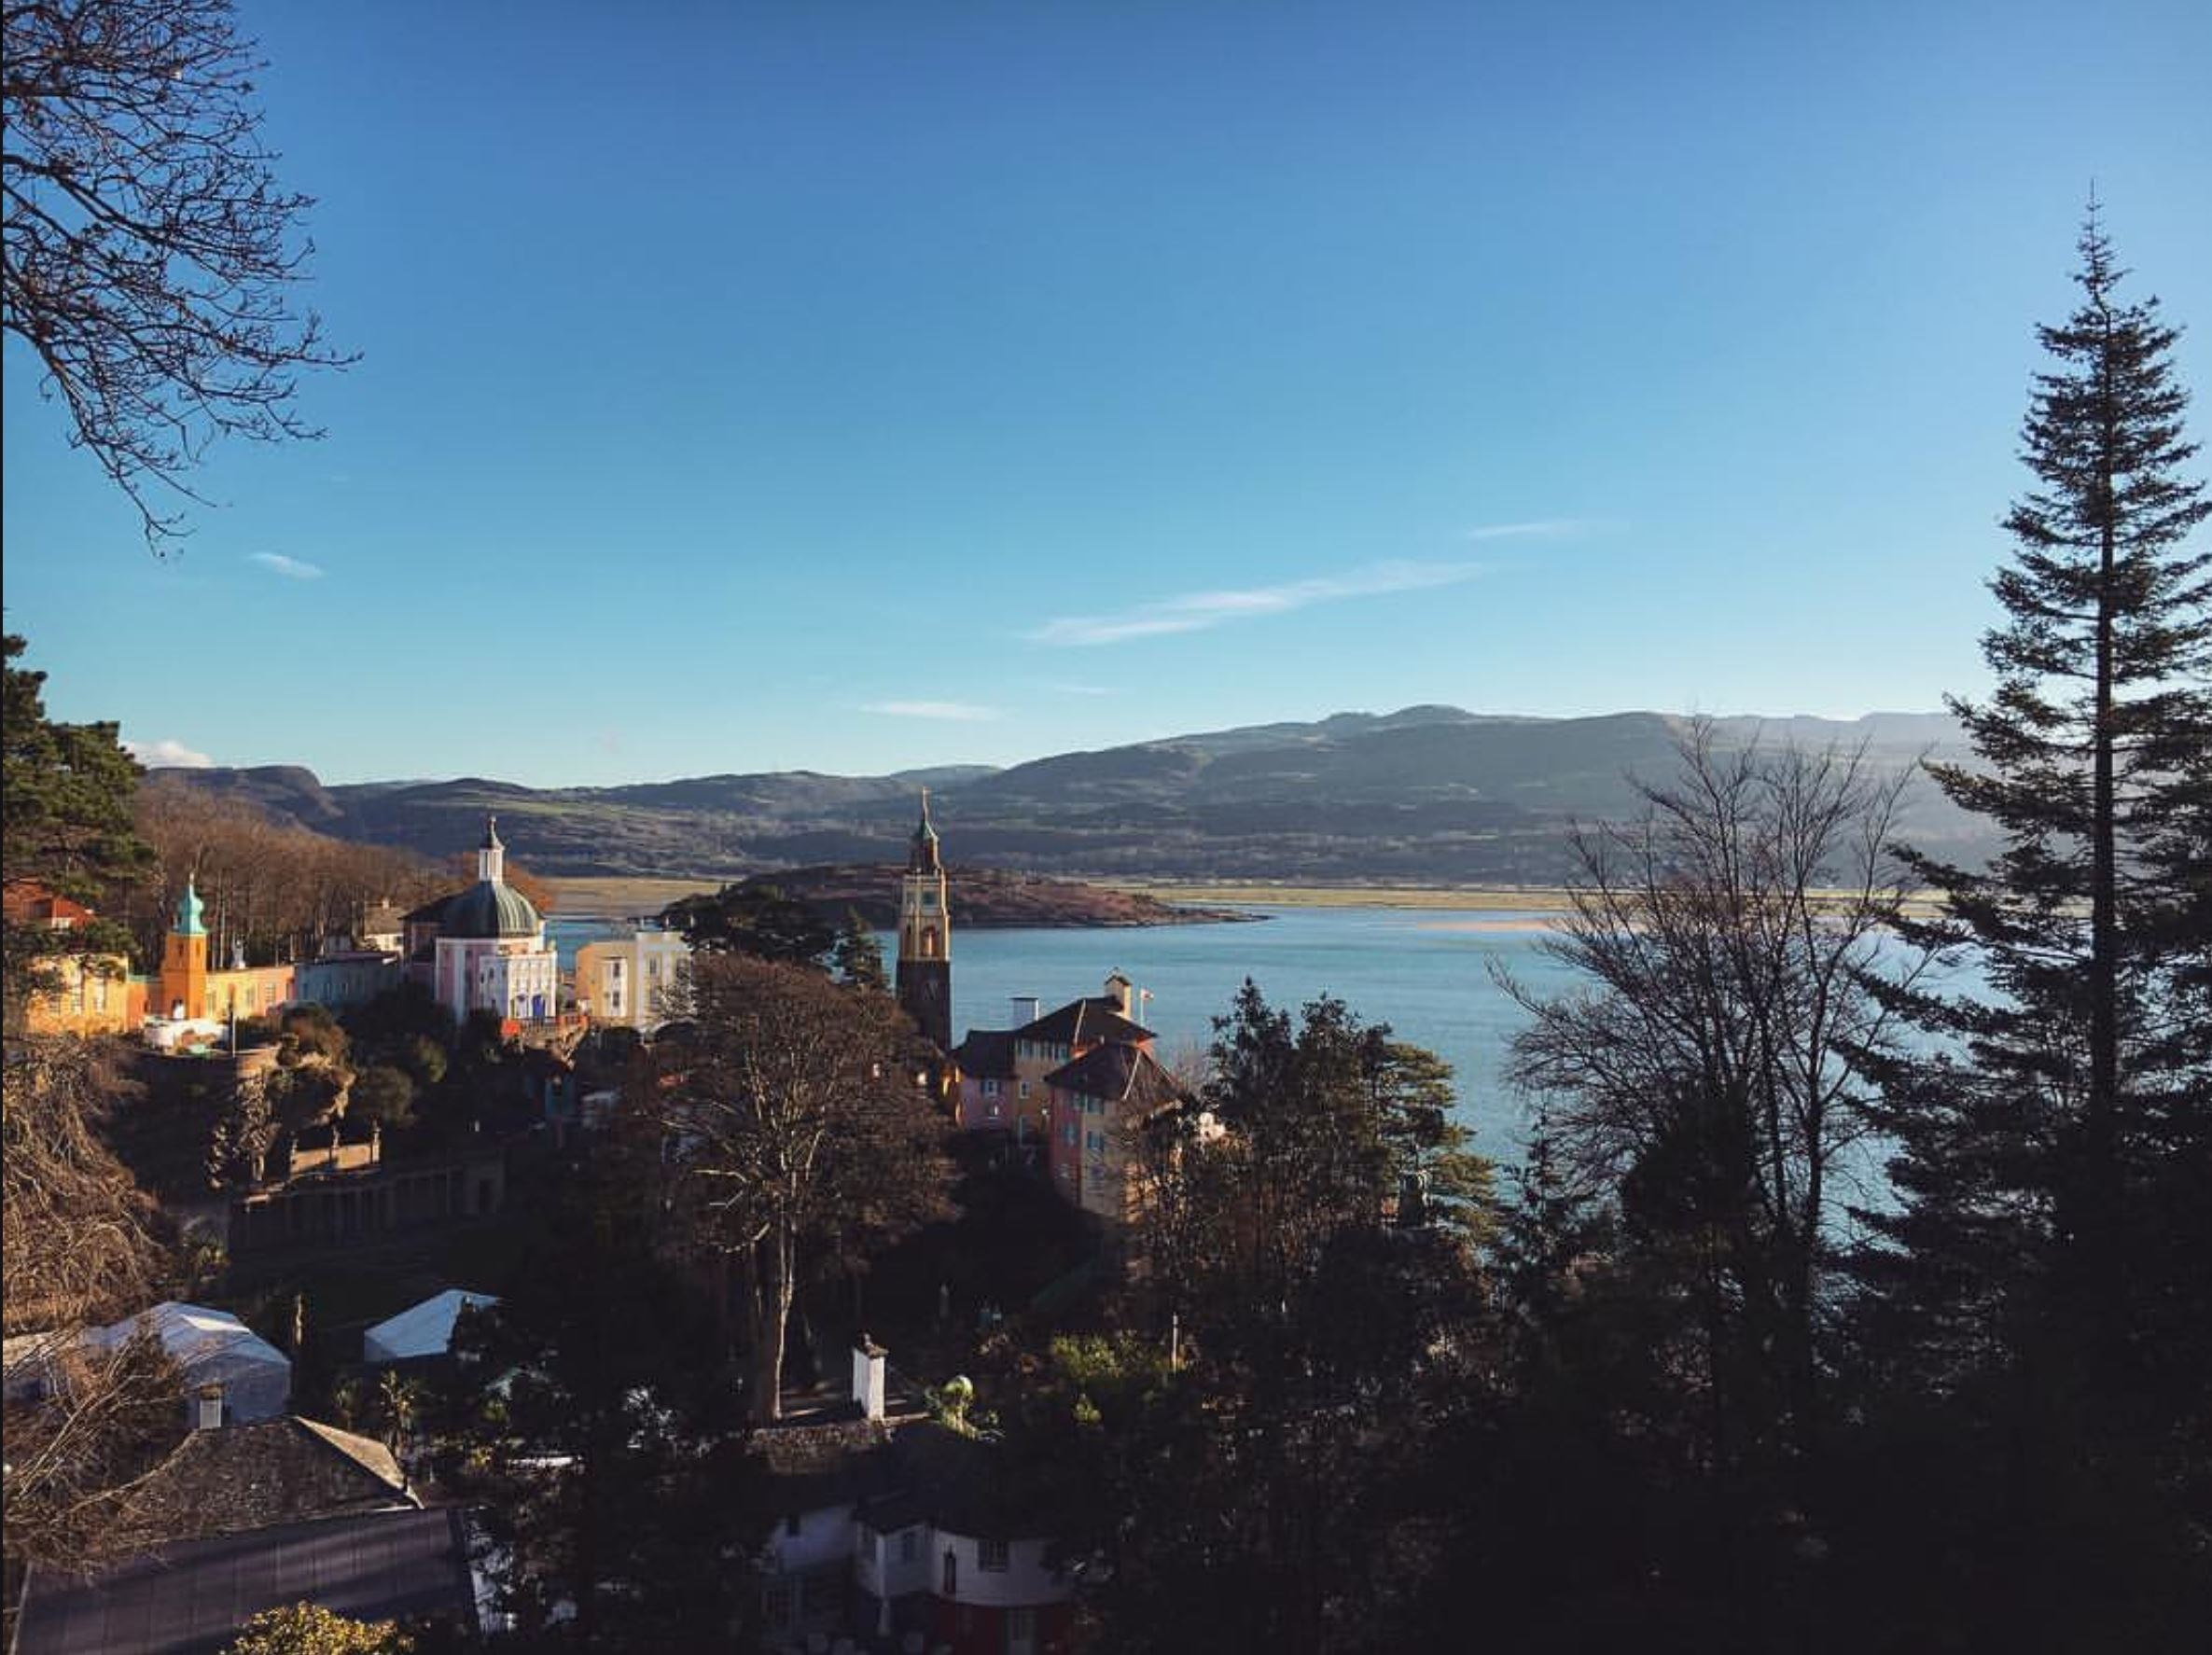 The view of Portmeirion, Wales